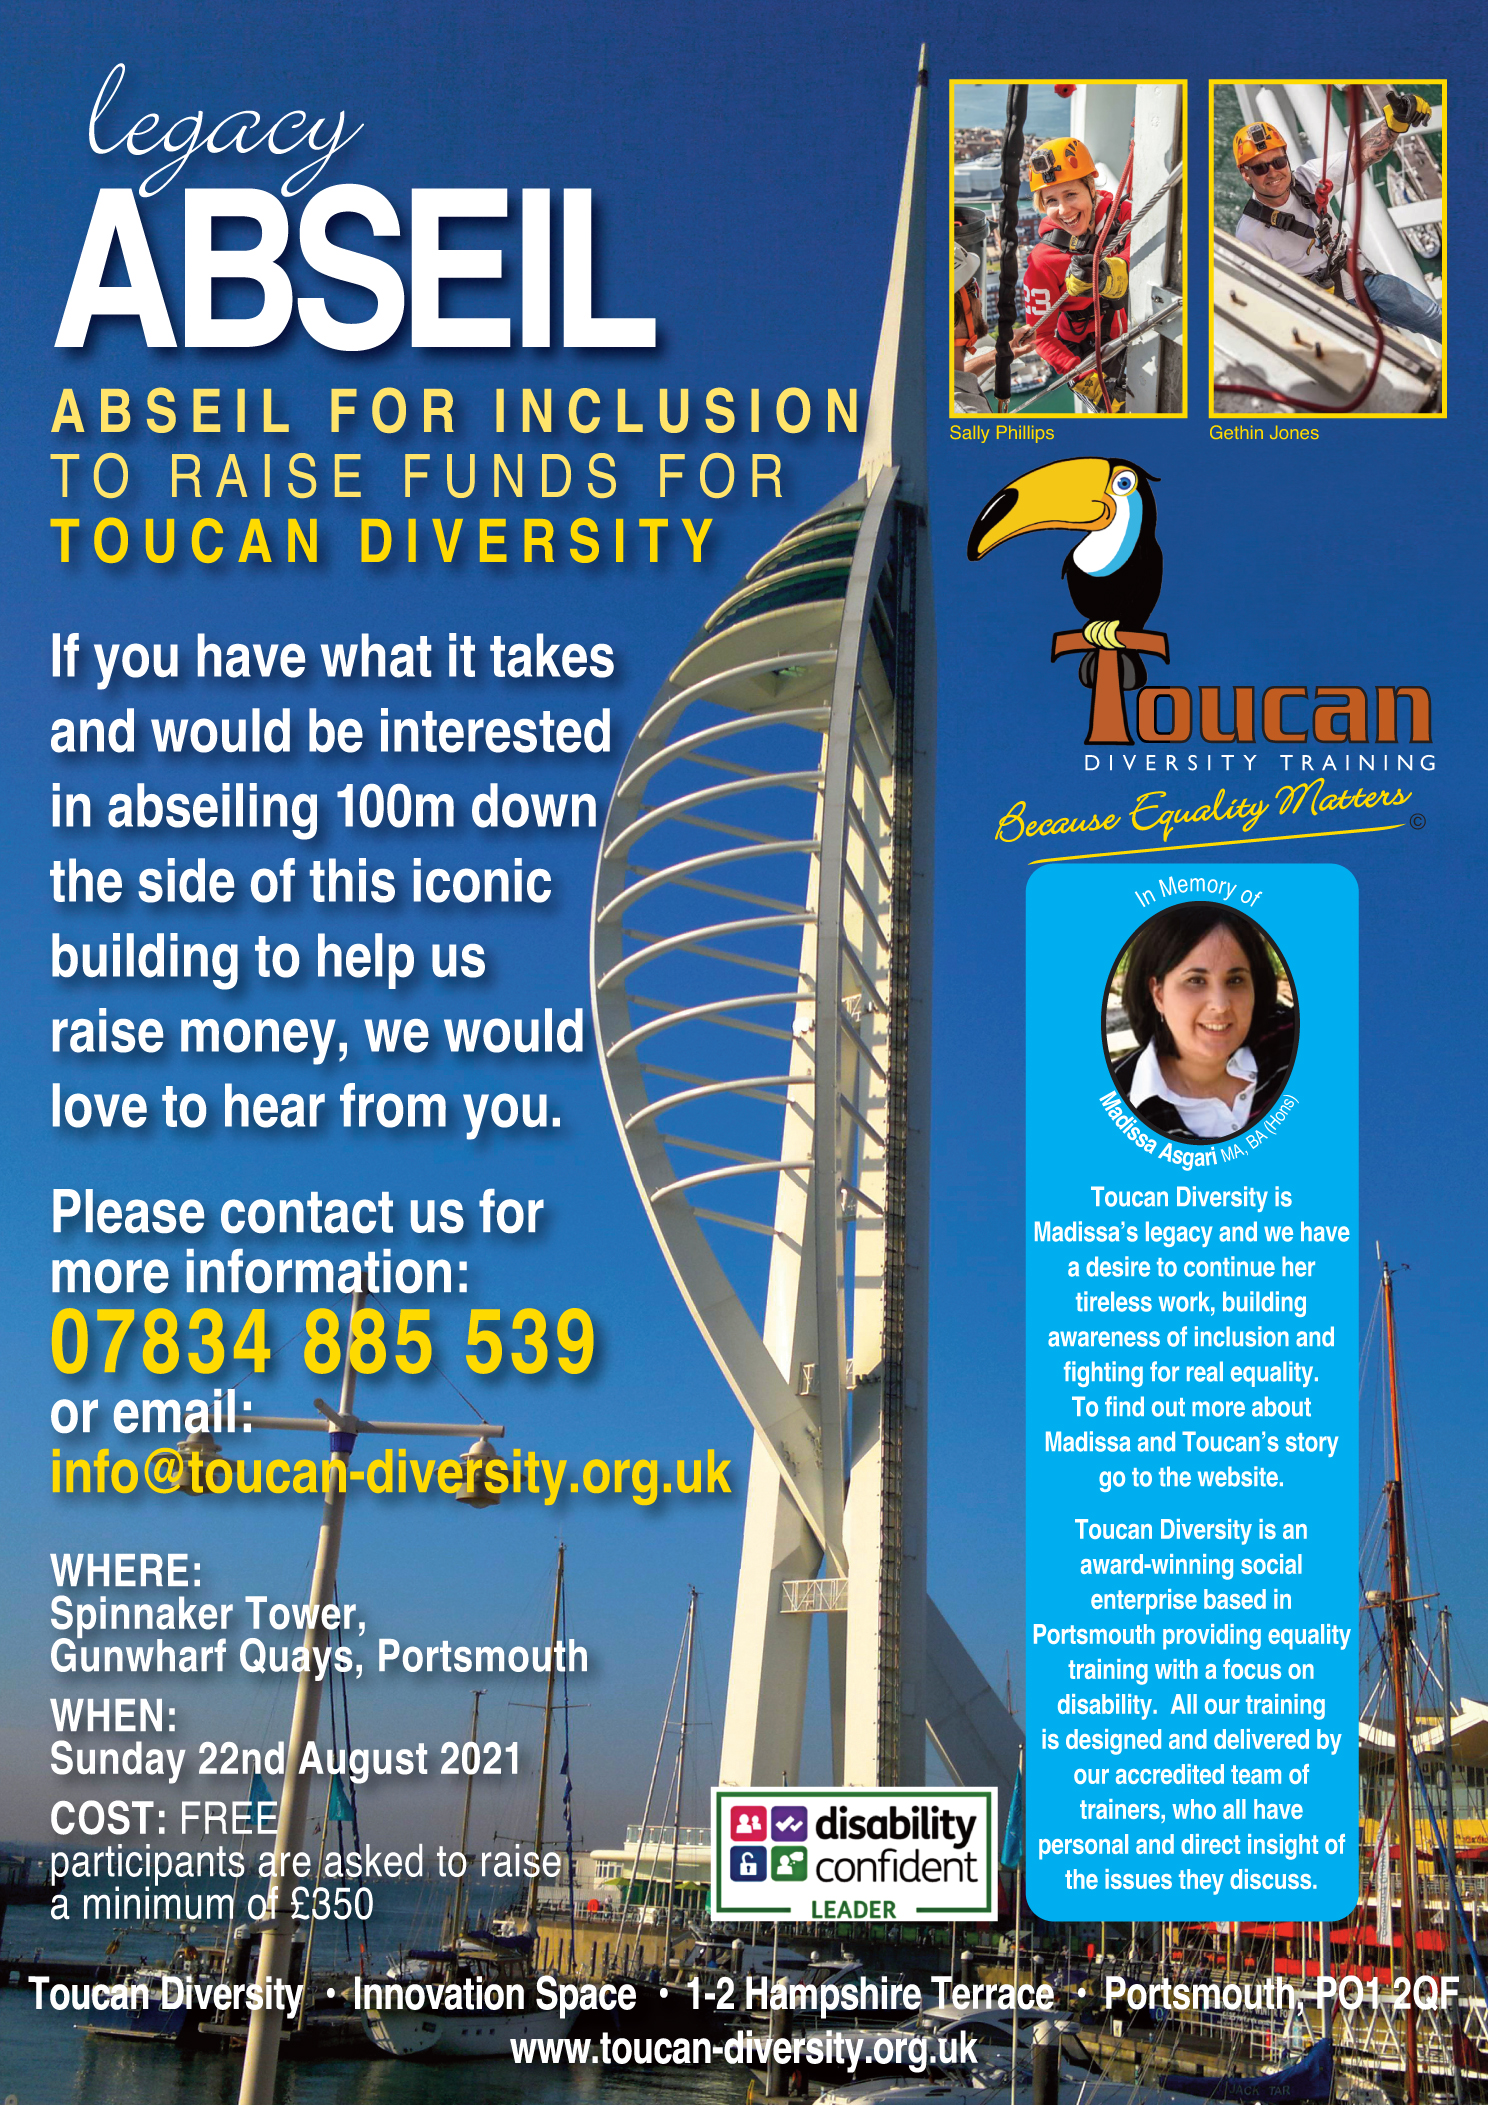 Poster for the abseil event.